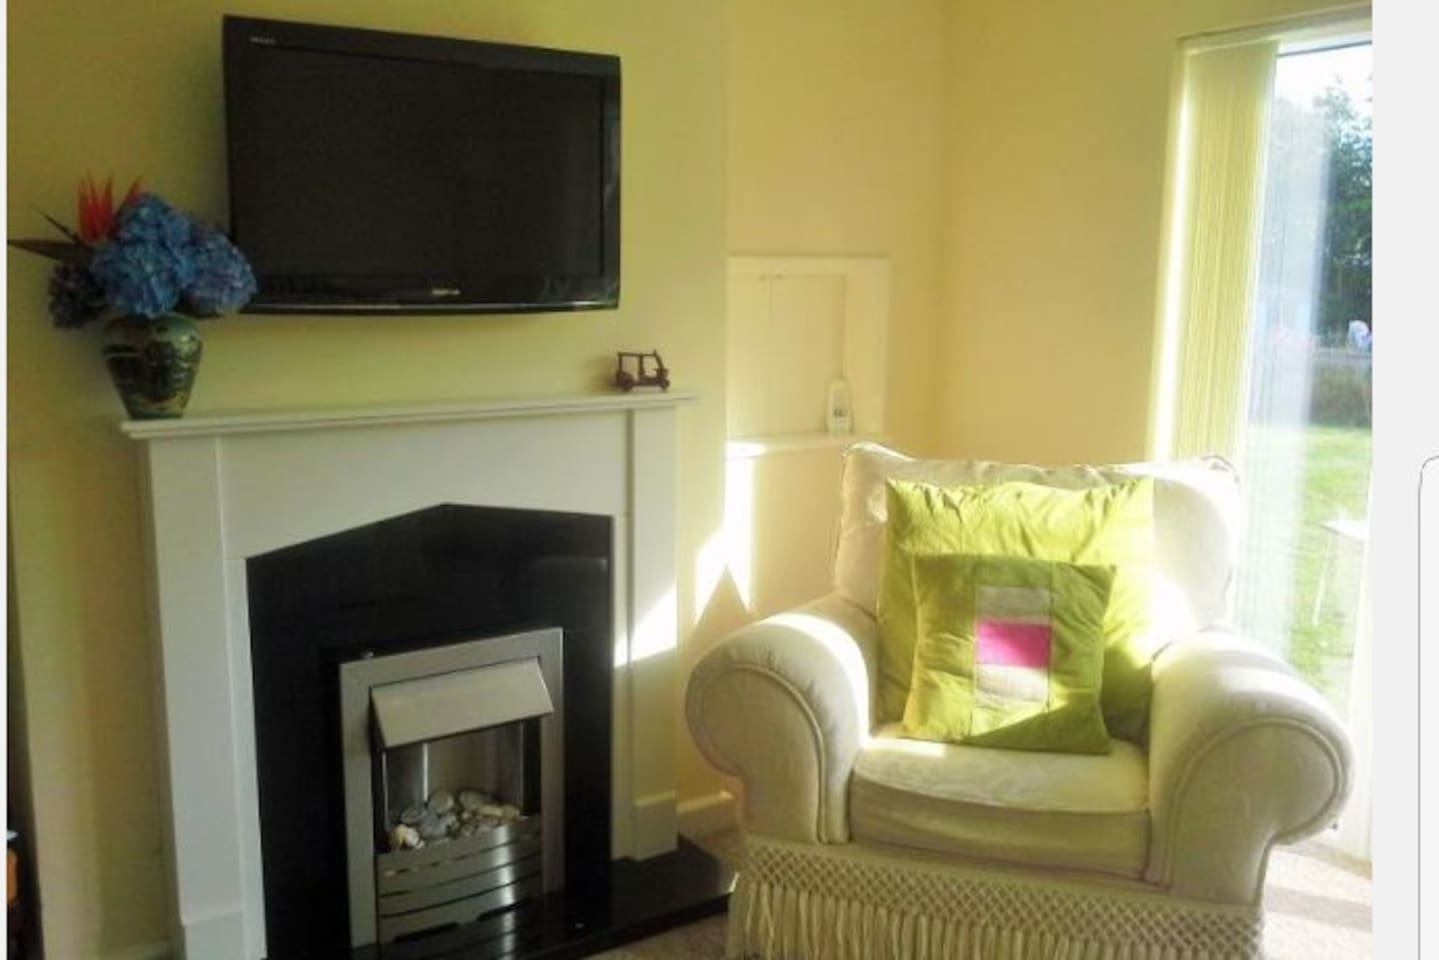 Our living room is light and airy with double doors out onto the garden